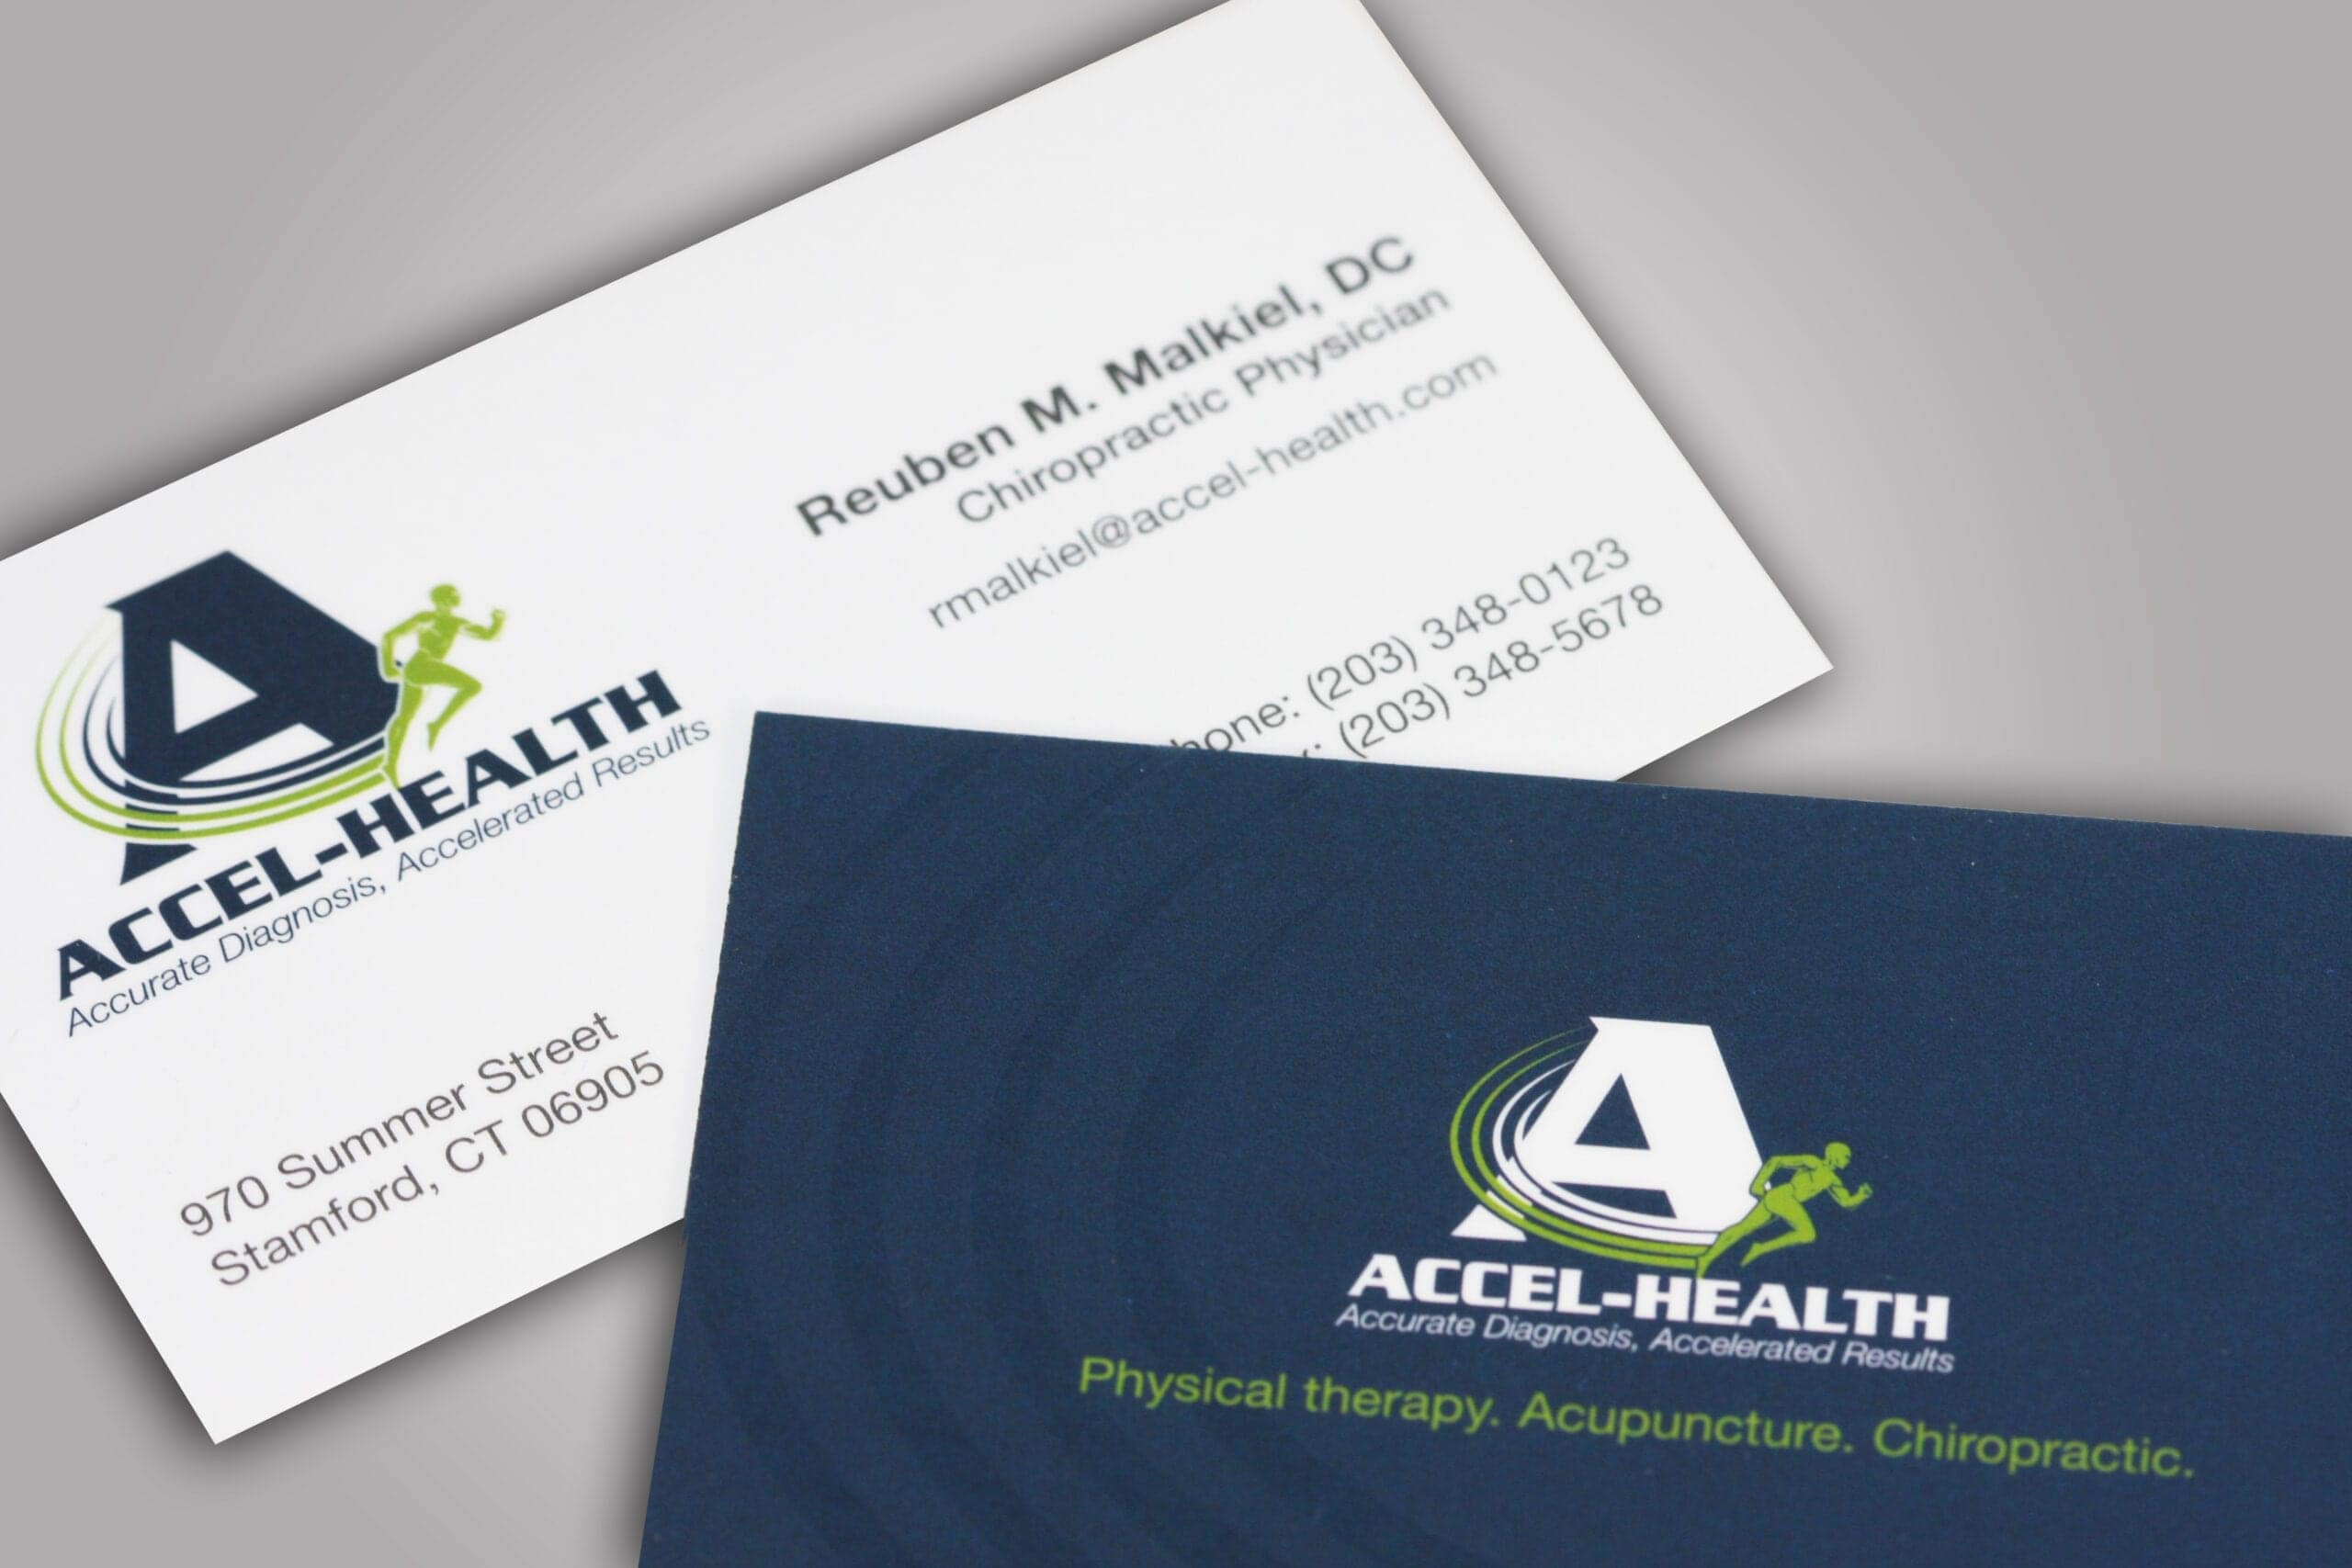 Custom printed two sided business cards can enhance your brand and any message you want to convey to potential clients. We can help you leave an imprint on your clients, by creating the perfect custom business card for you and your business.